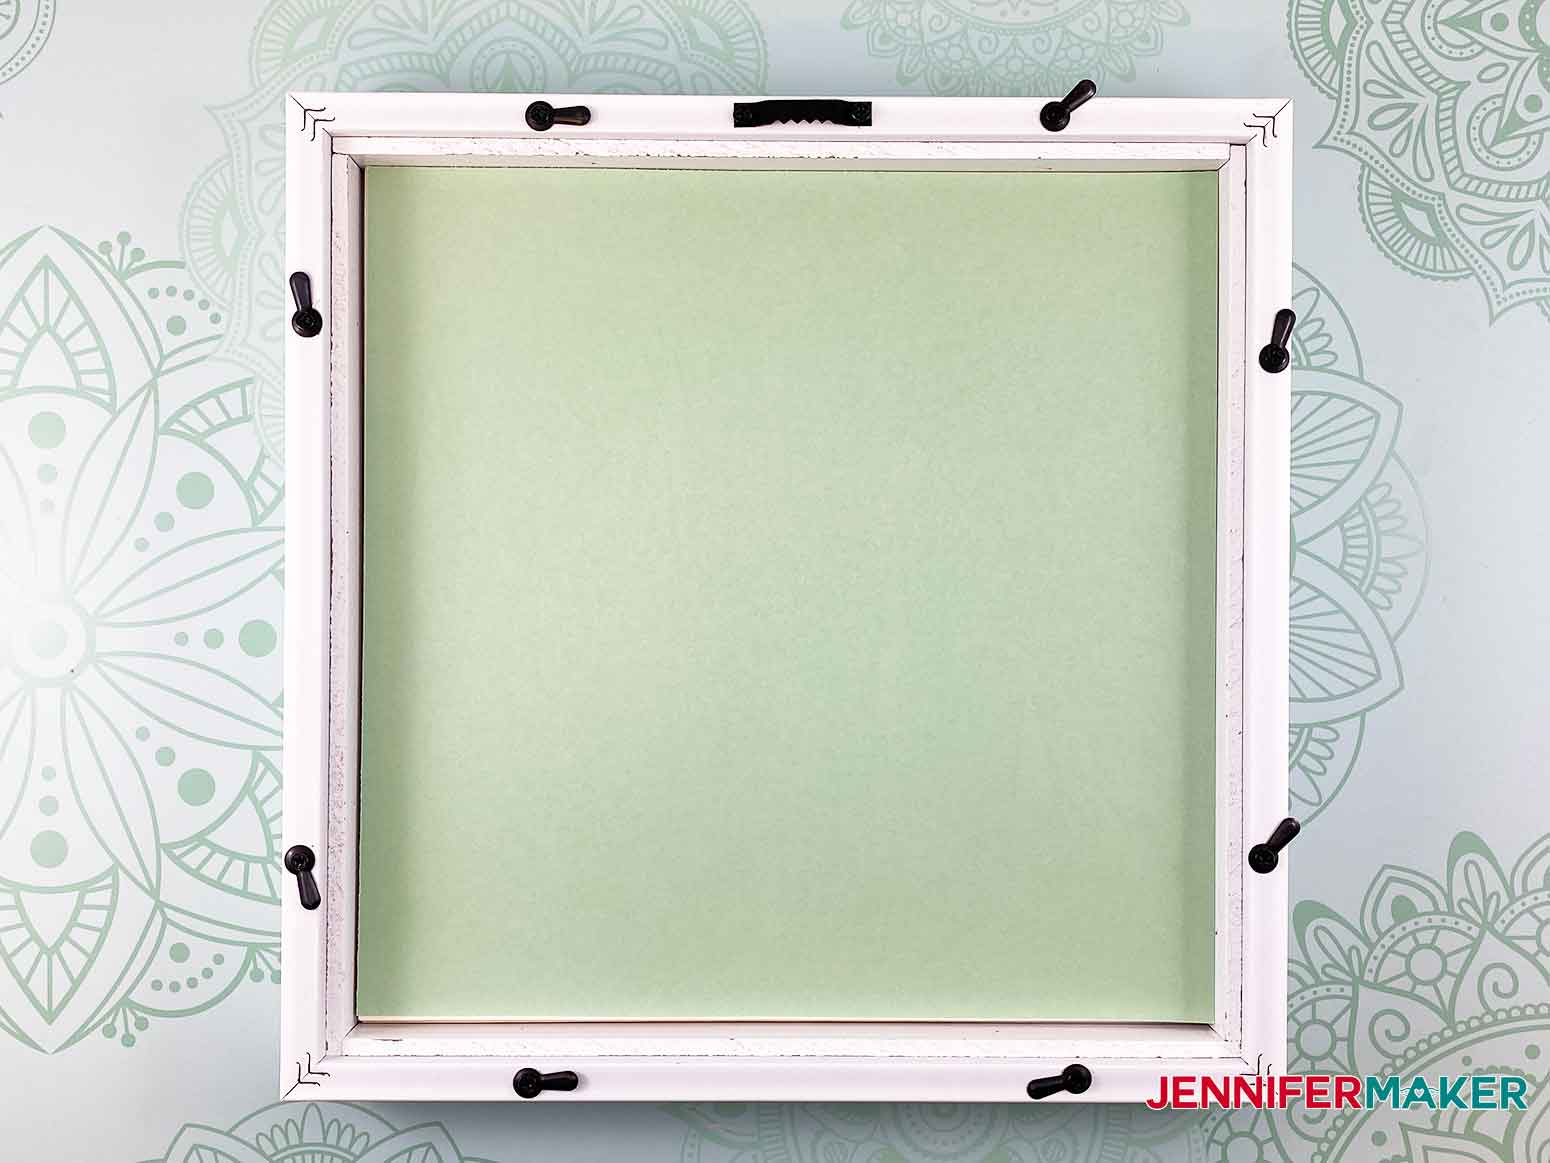 Add a contrast piece of cardstock into the frame for my 3D layered paper cut art flower